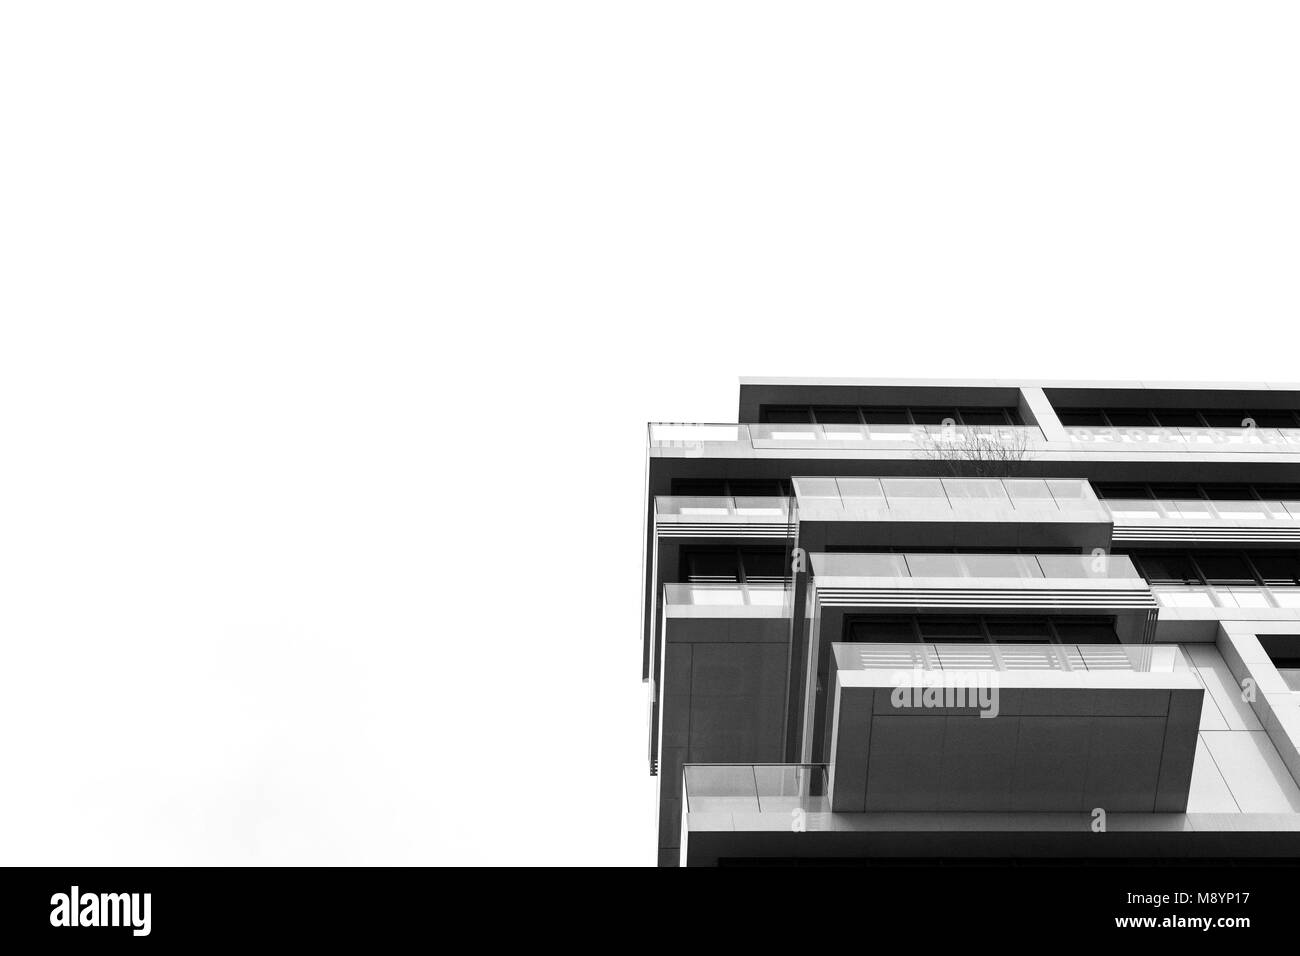 Berlin, Germany, 13th March 2018. German architecture in black and white. - Stock Image